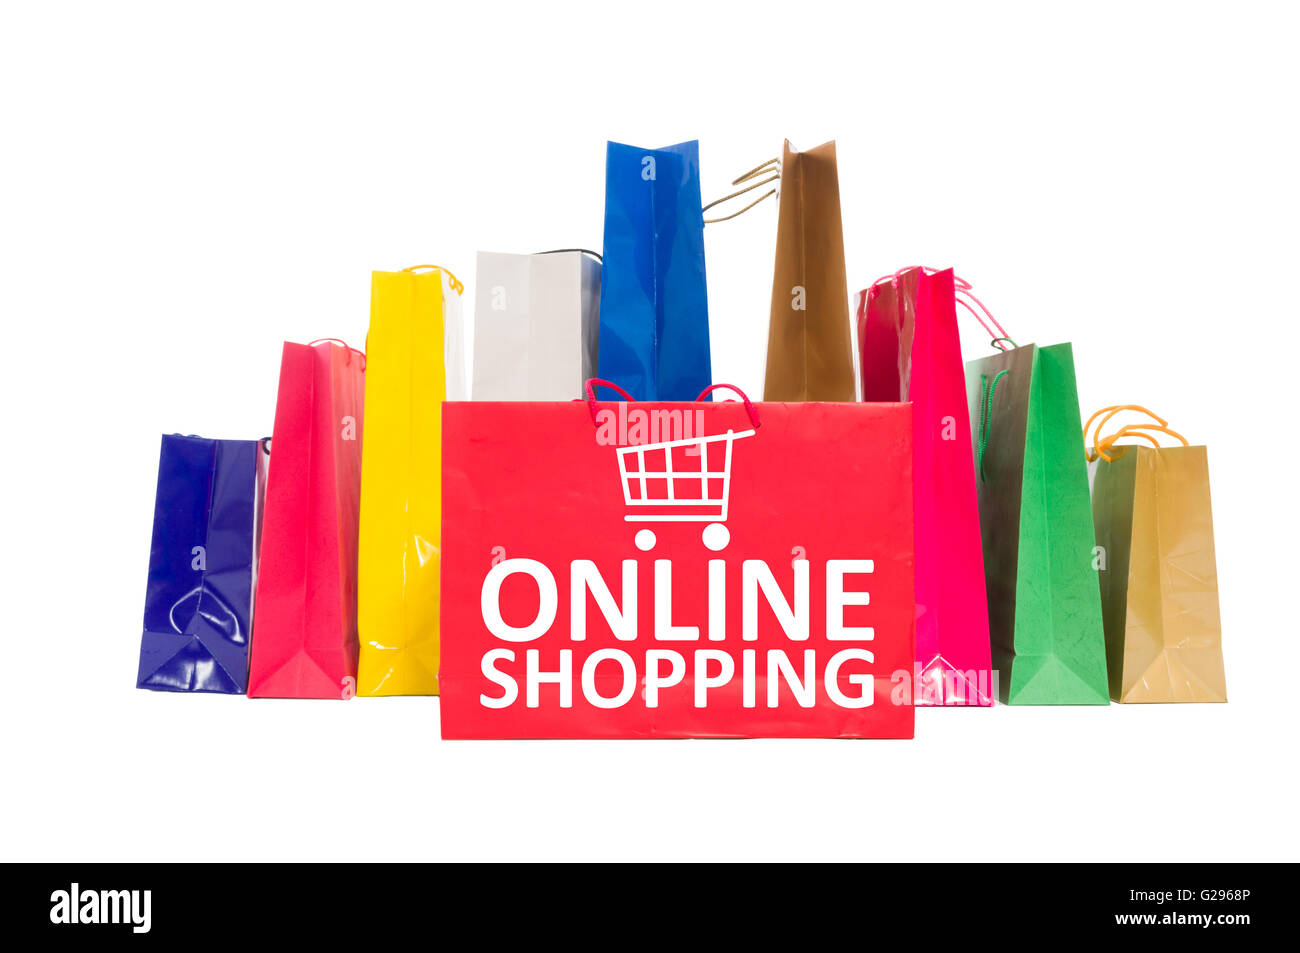 online-shopping-concept-using-shopping-bags-isolated-on-white-background-G2968P.jpg